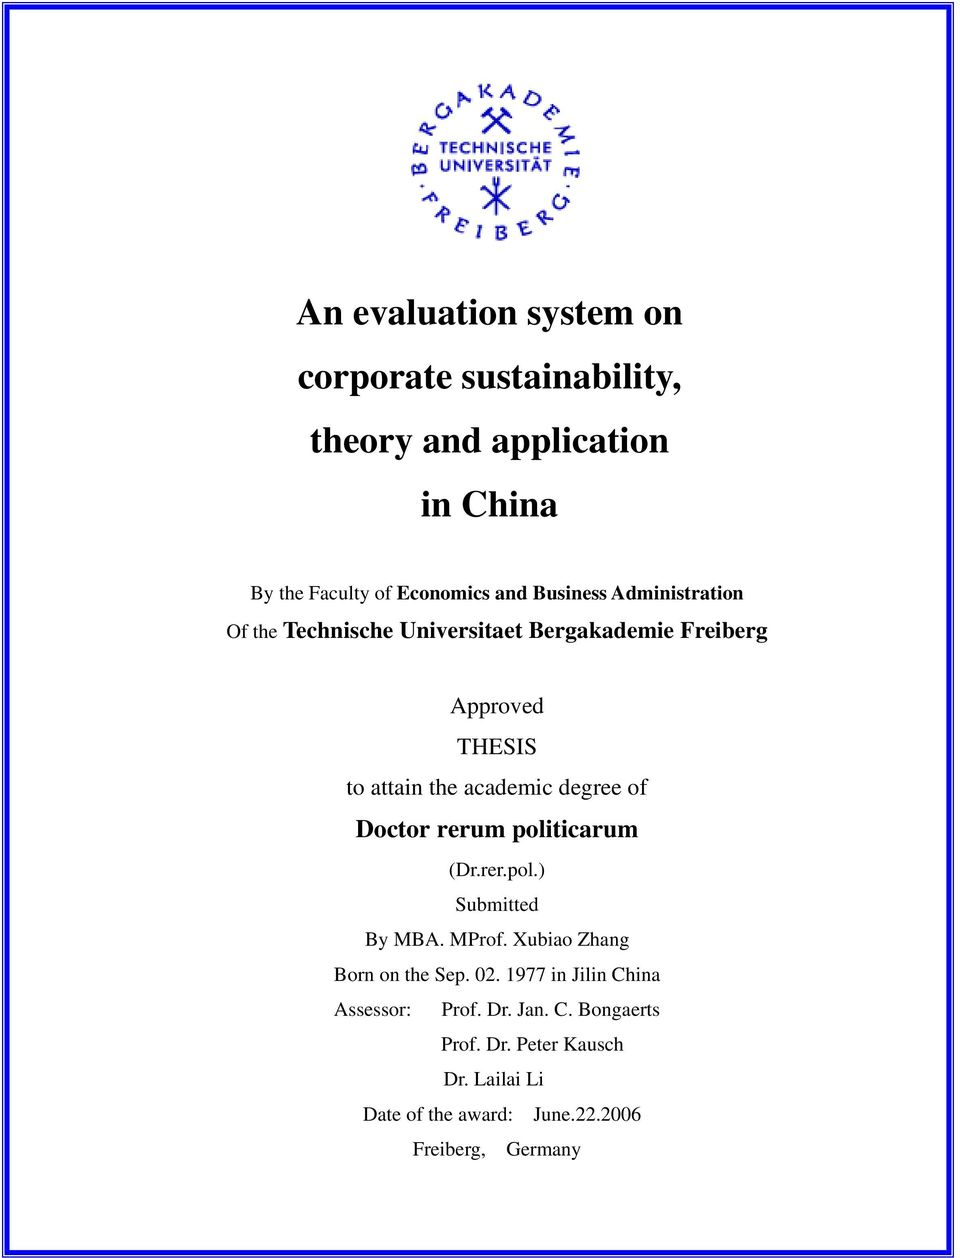 degree of Doctor rerum politicarum (Dr.rer.pol.) Submitted By MBA. MProf. Xubiao Zhang Born on the Sep. 02.